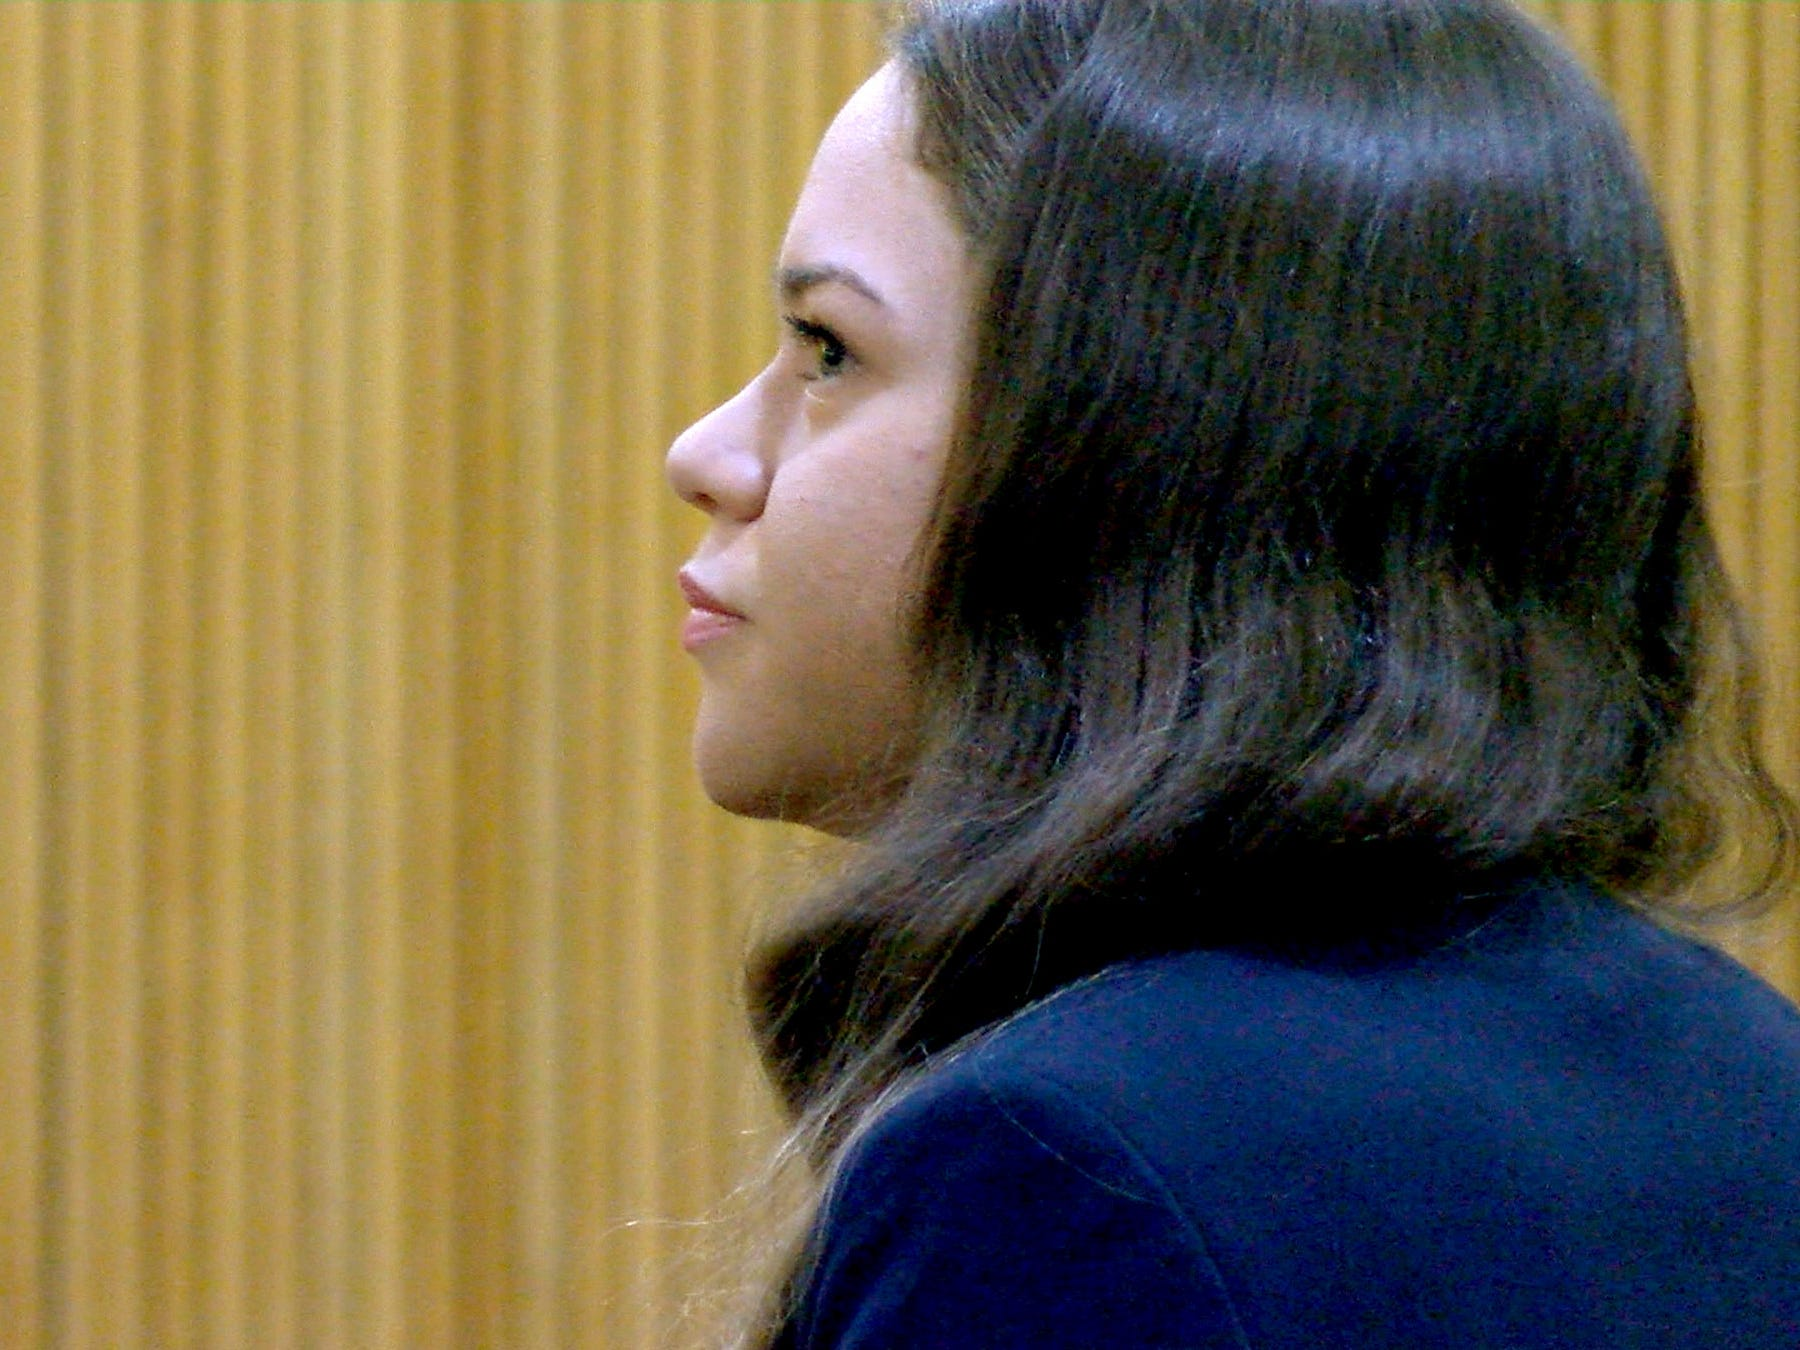 Brookdale Community College honors student Raquel Garajau is shown in State Superior Court in Freehold Friday, January 18, 2019 before she was sentenced to a 33 year prison term for felony murder and other offenses related to the death of marijuana dealer Trupal Patel.